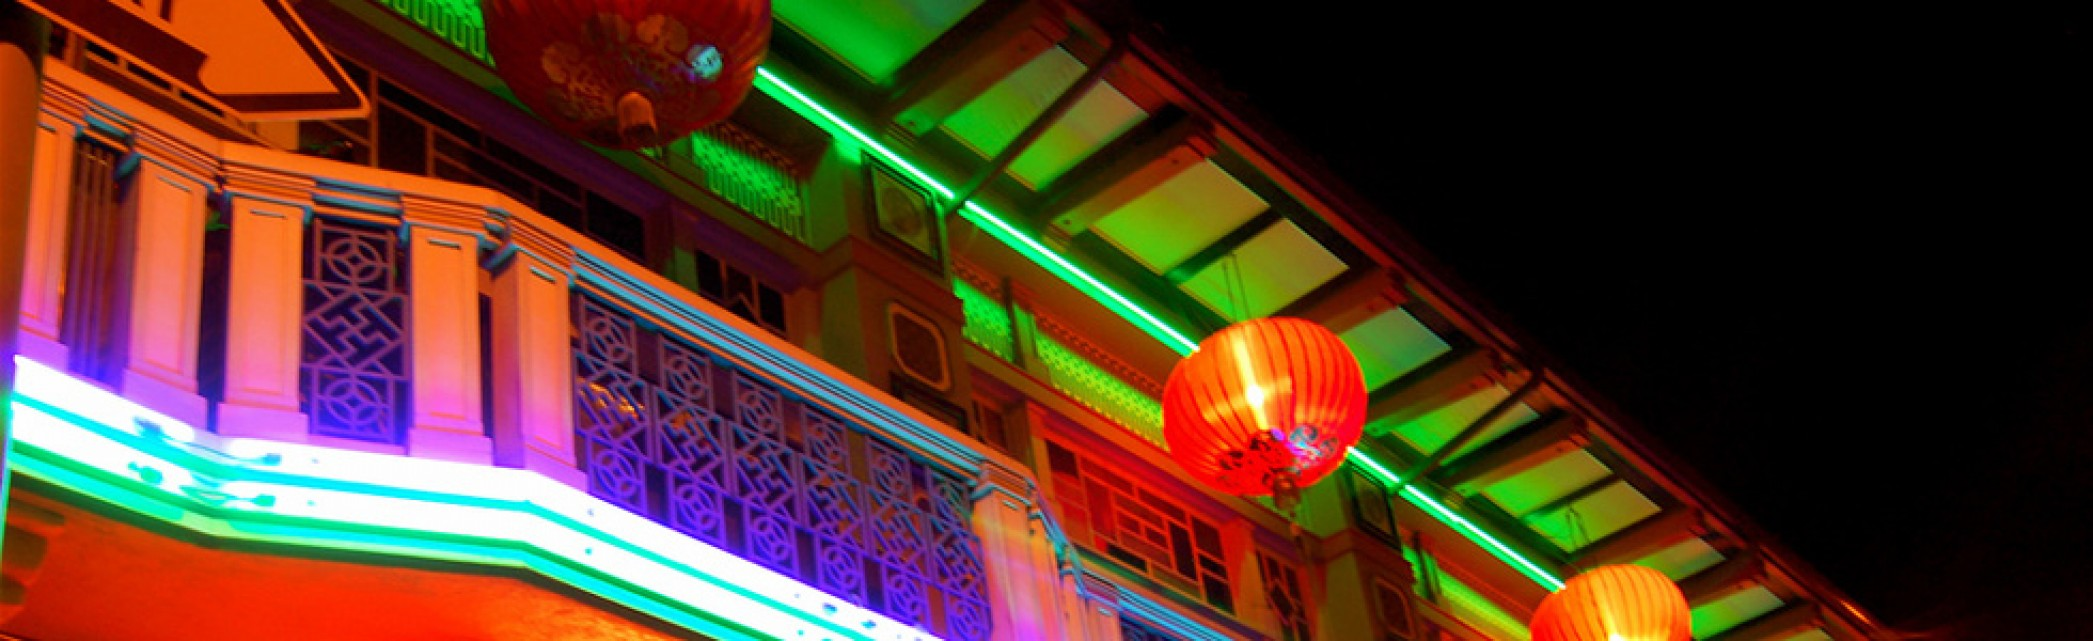 Chinatown Lights